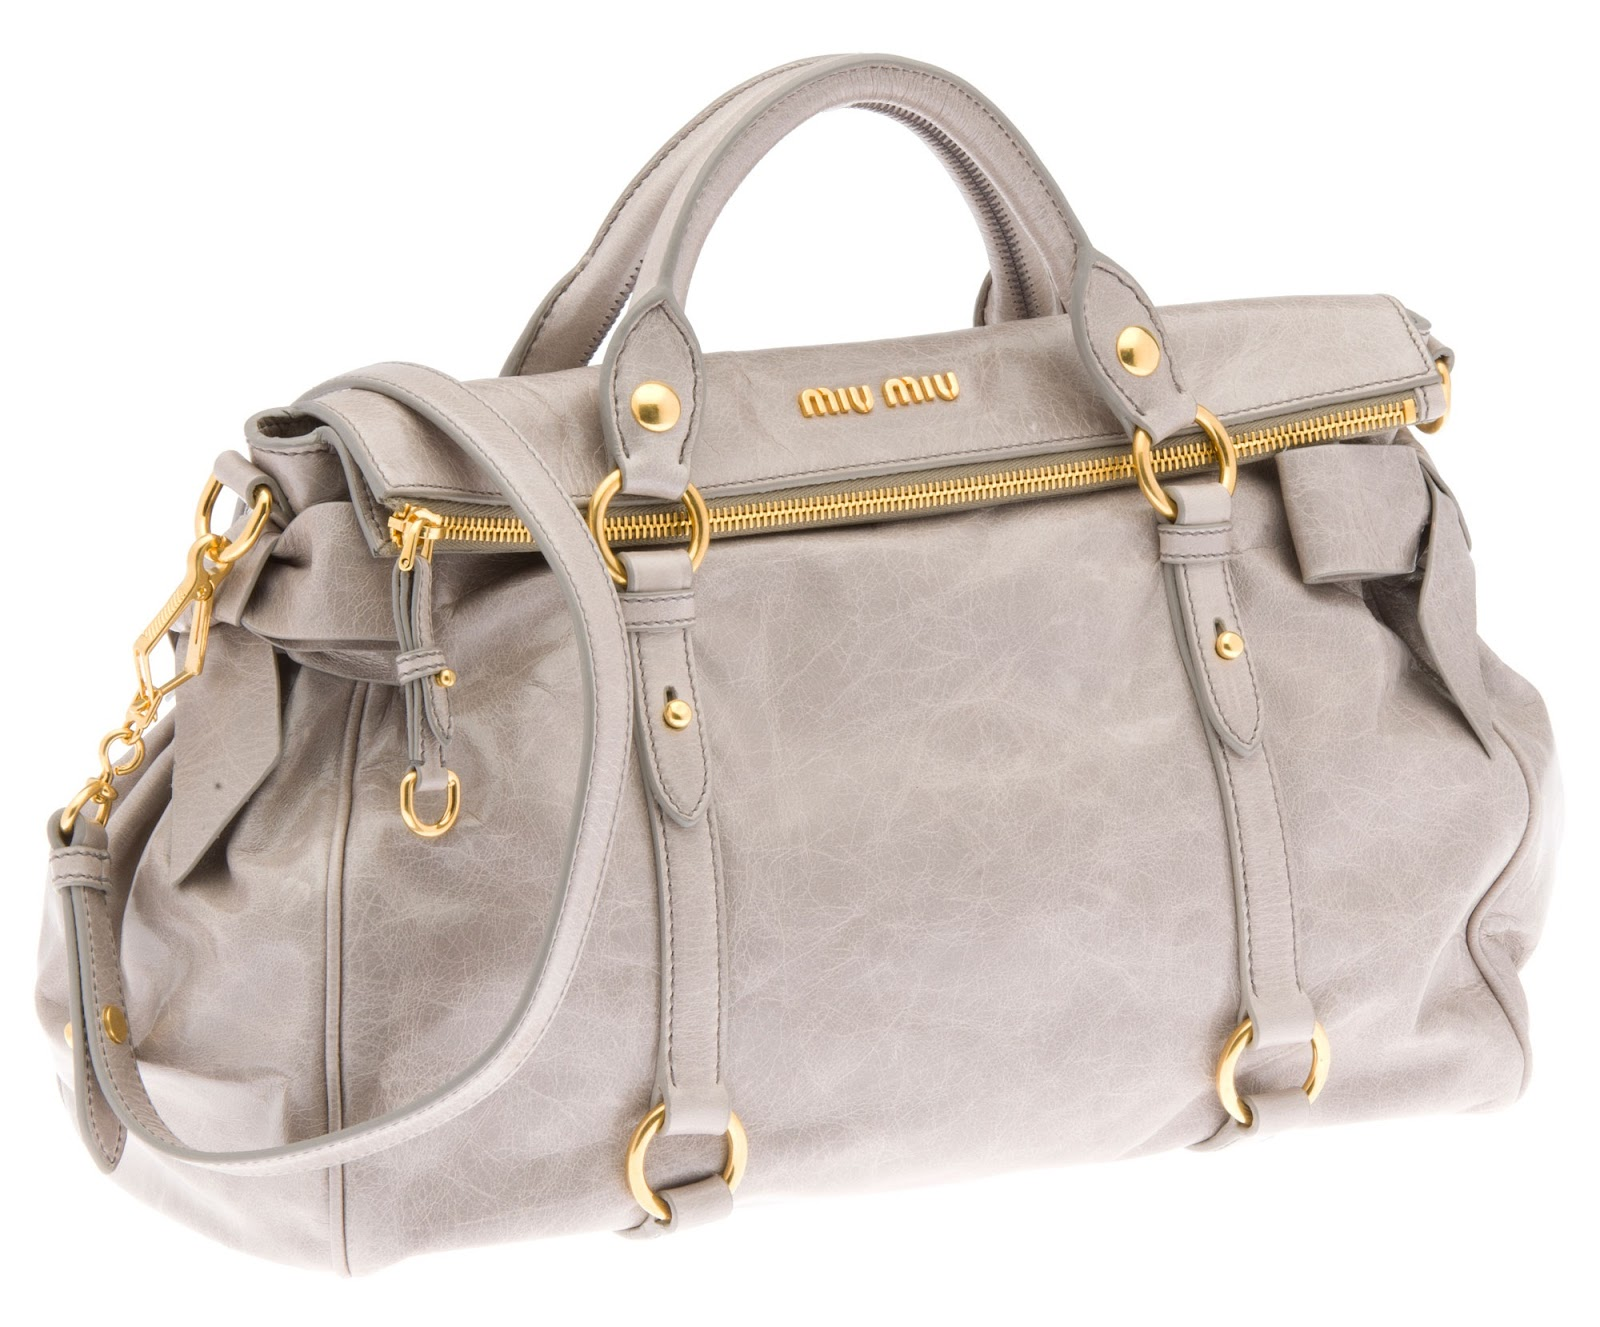 68d070589171 Neo LUXuries  MIU MIU Vitello Lux   Shiny Calf Medium Top-Handle Bag ...